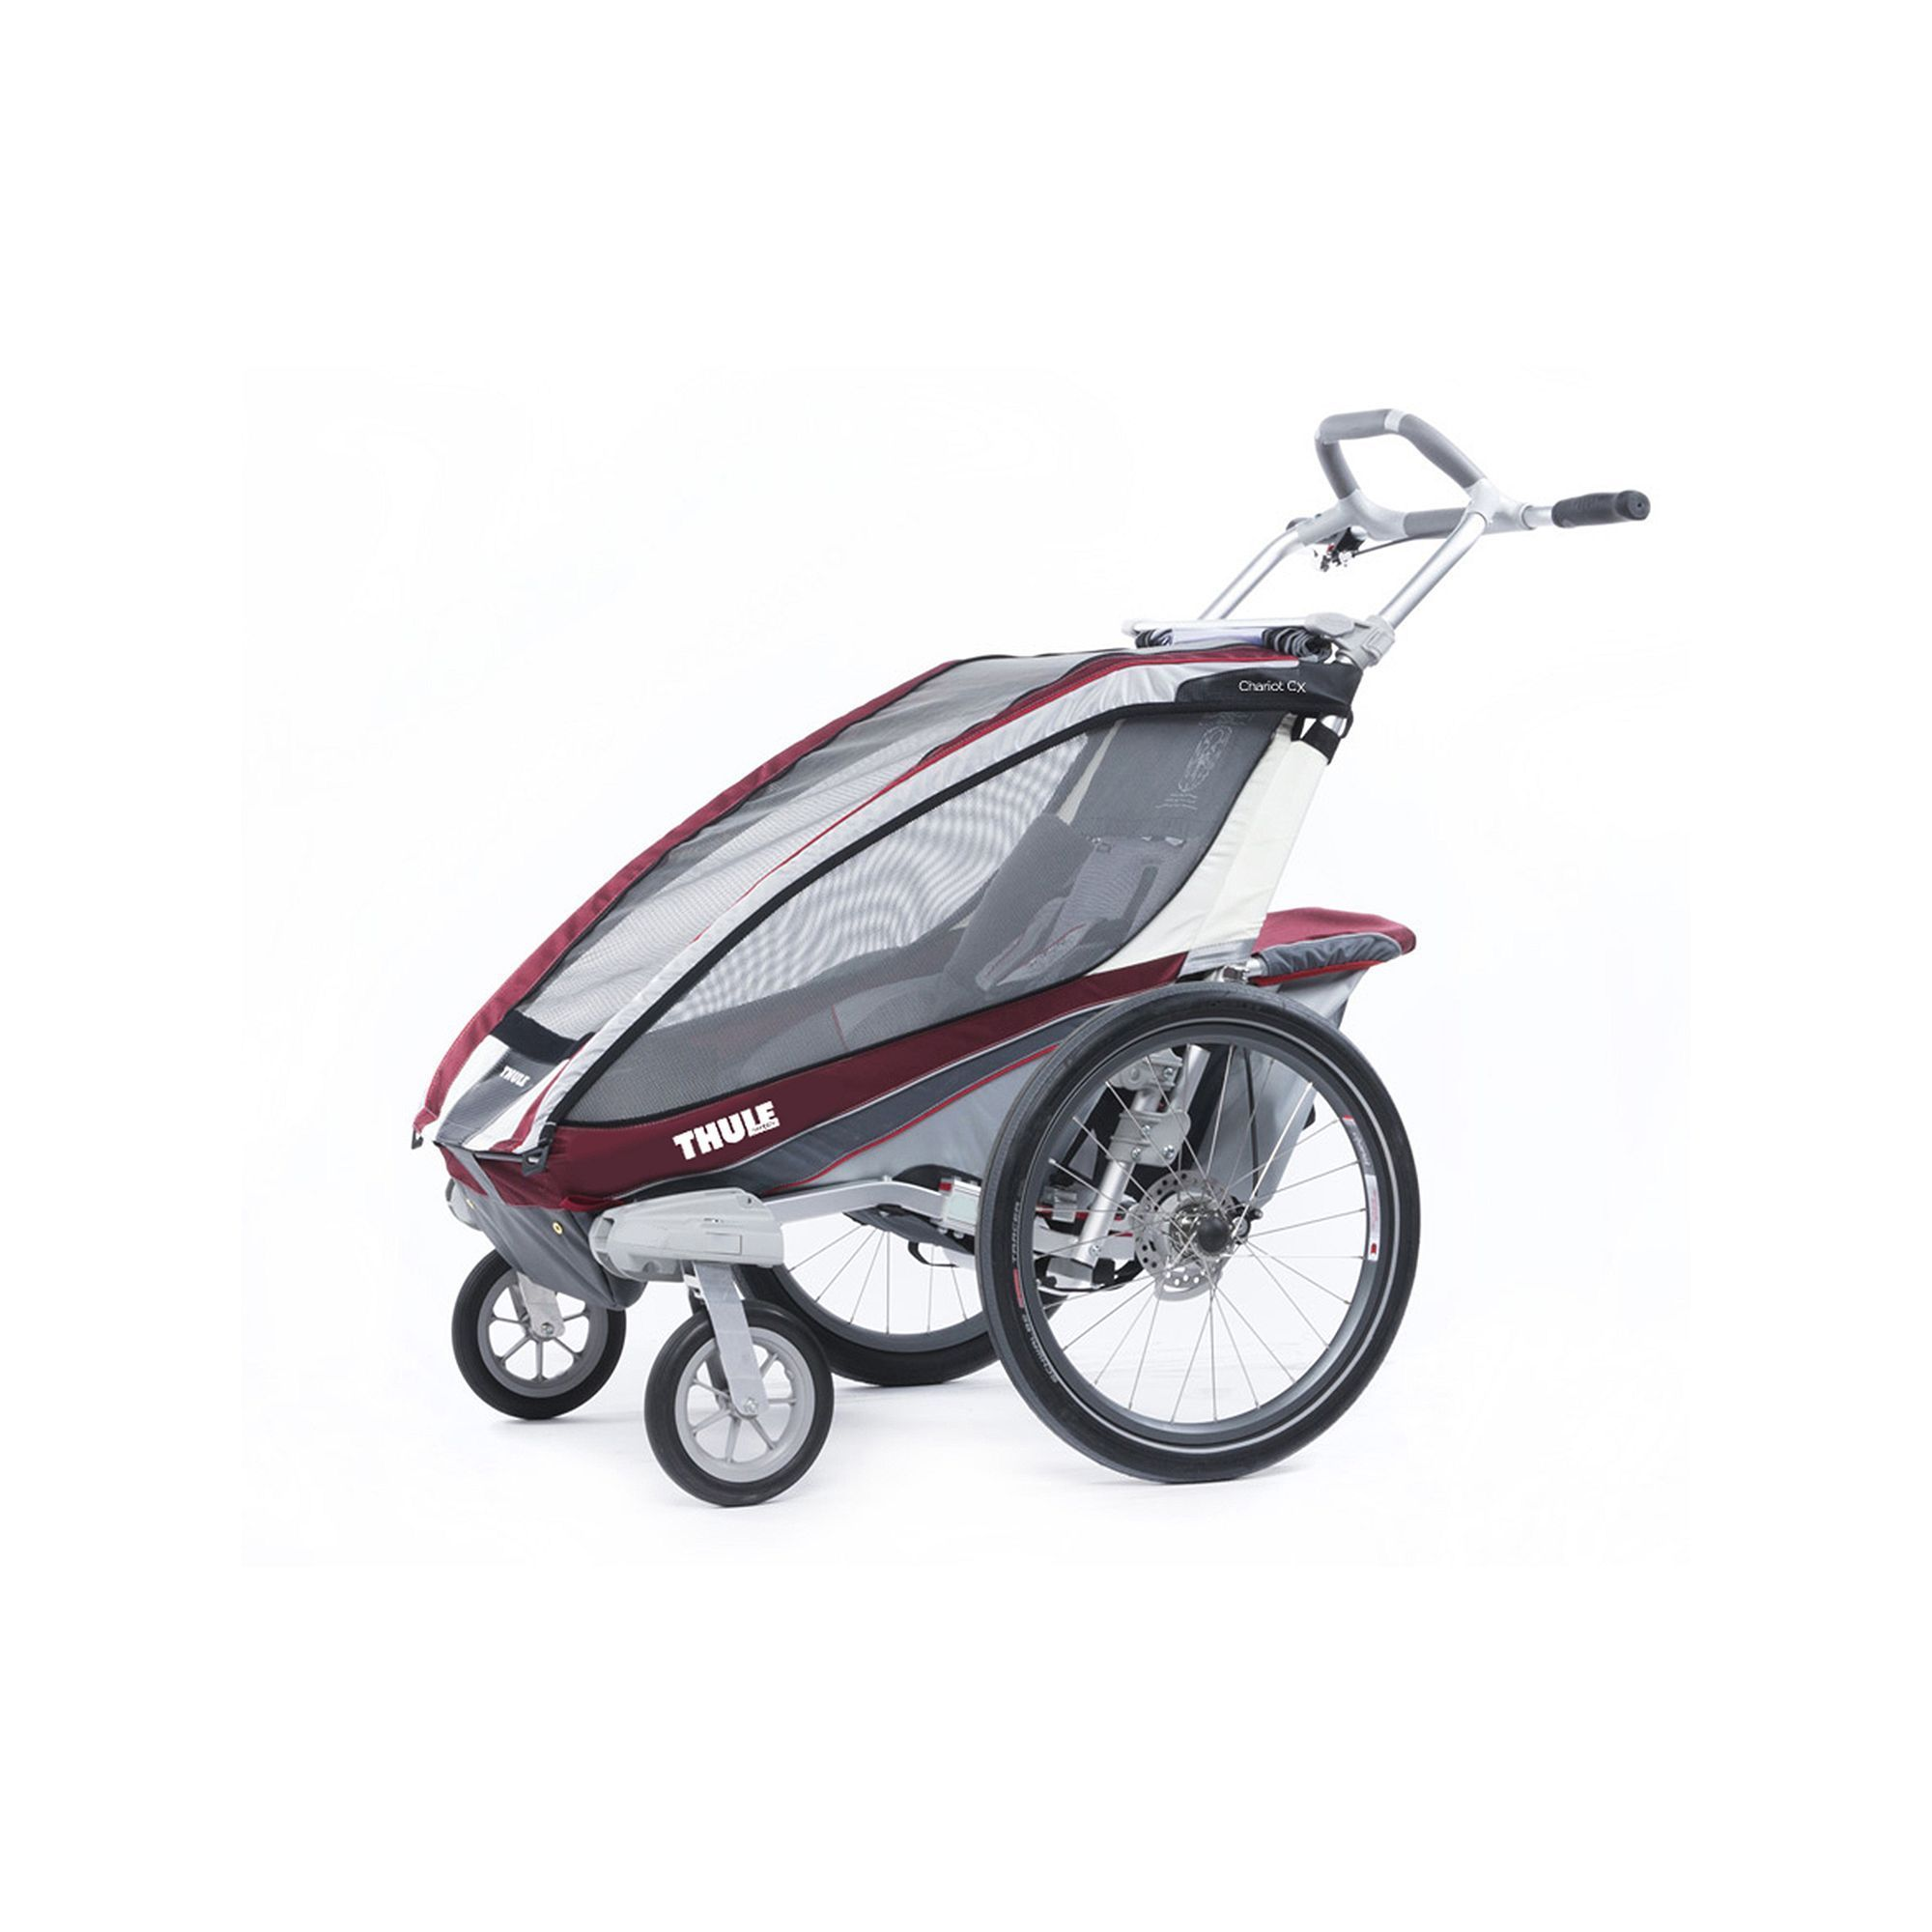 Thule Chariot CX 1 MultiSport Child Carrier & Stroller